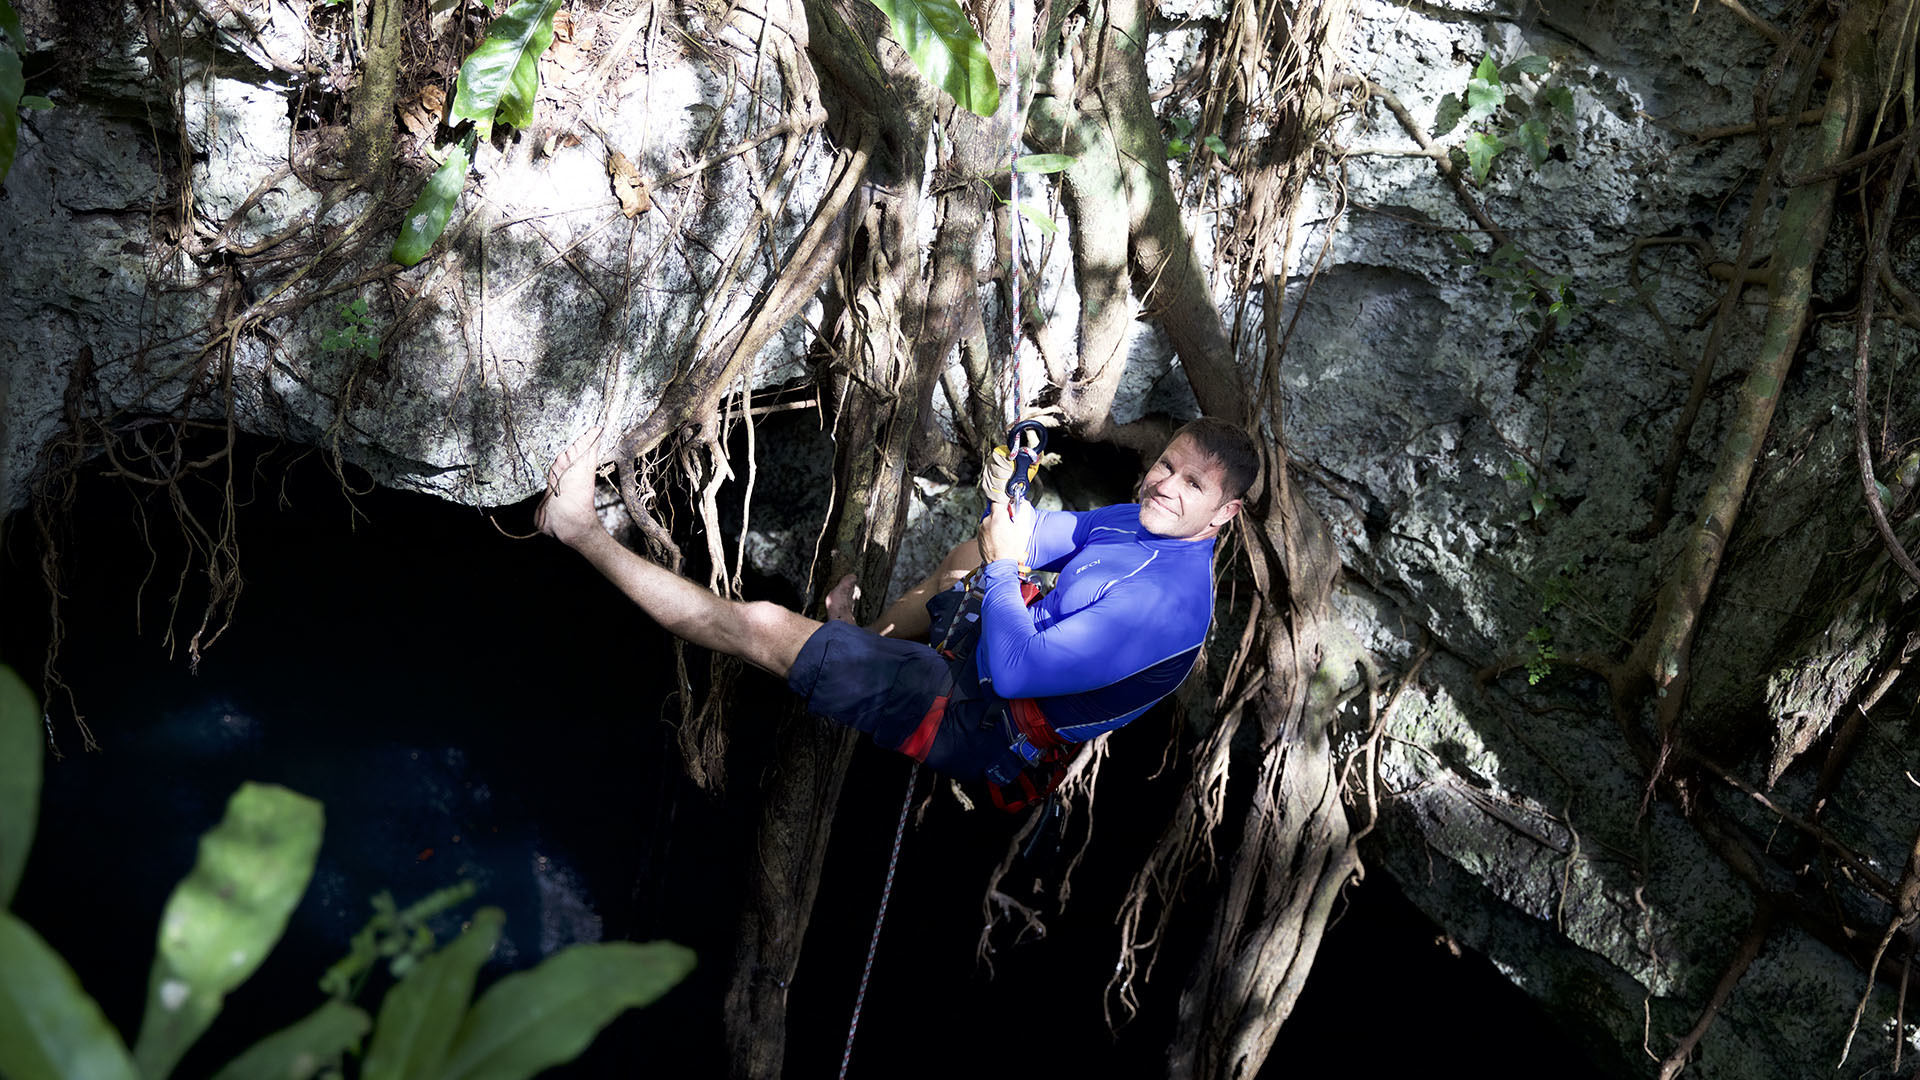 Image of Steve Backshall abseiling down a cenote.